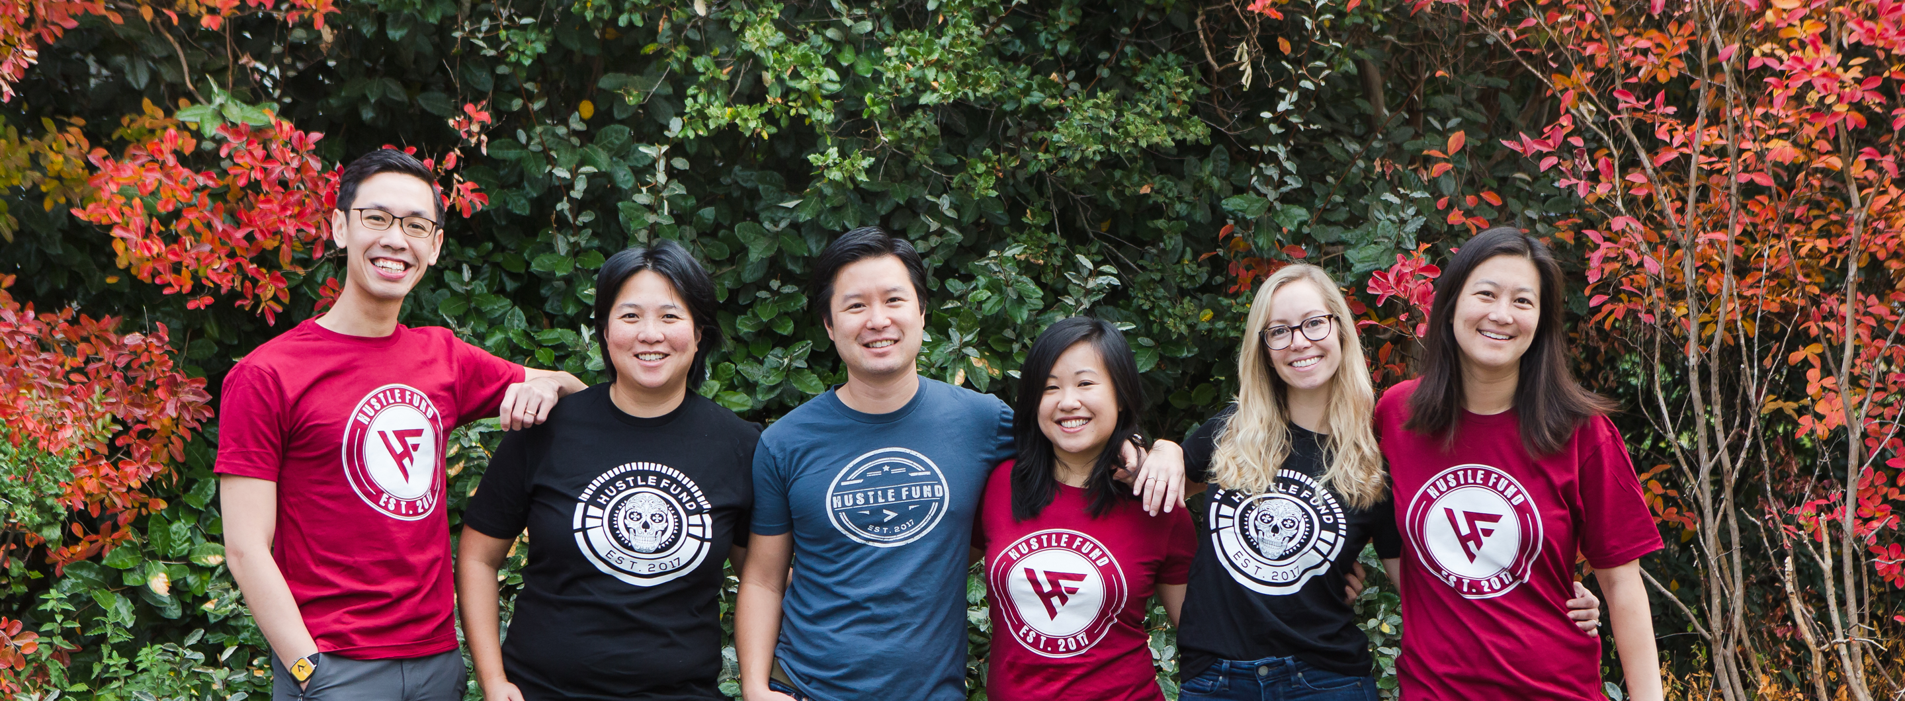 The Hustle Fund is Changing Venture Capital and Creating Greater Access to Aspiring Founders